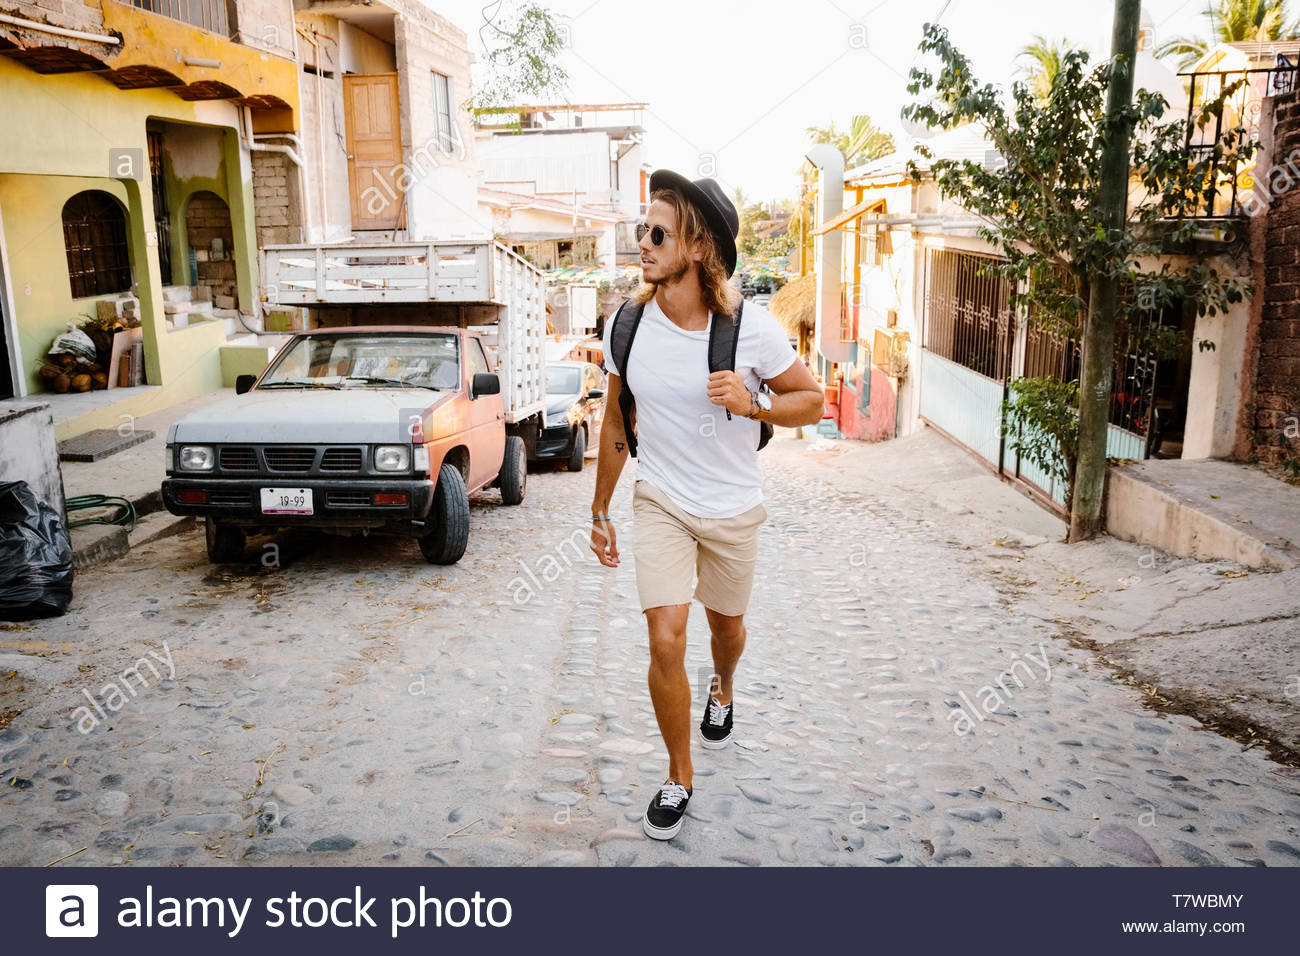 Young male tourist walking on cobblestone street, Mexico - Stock Image